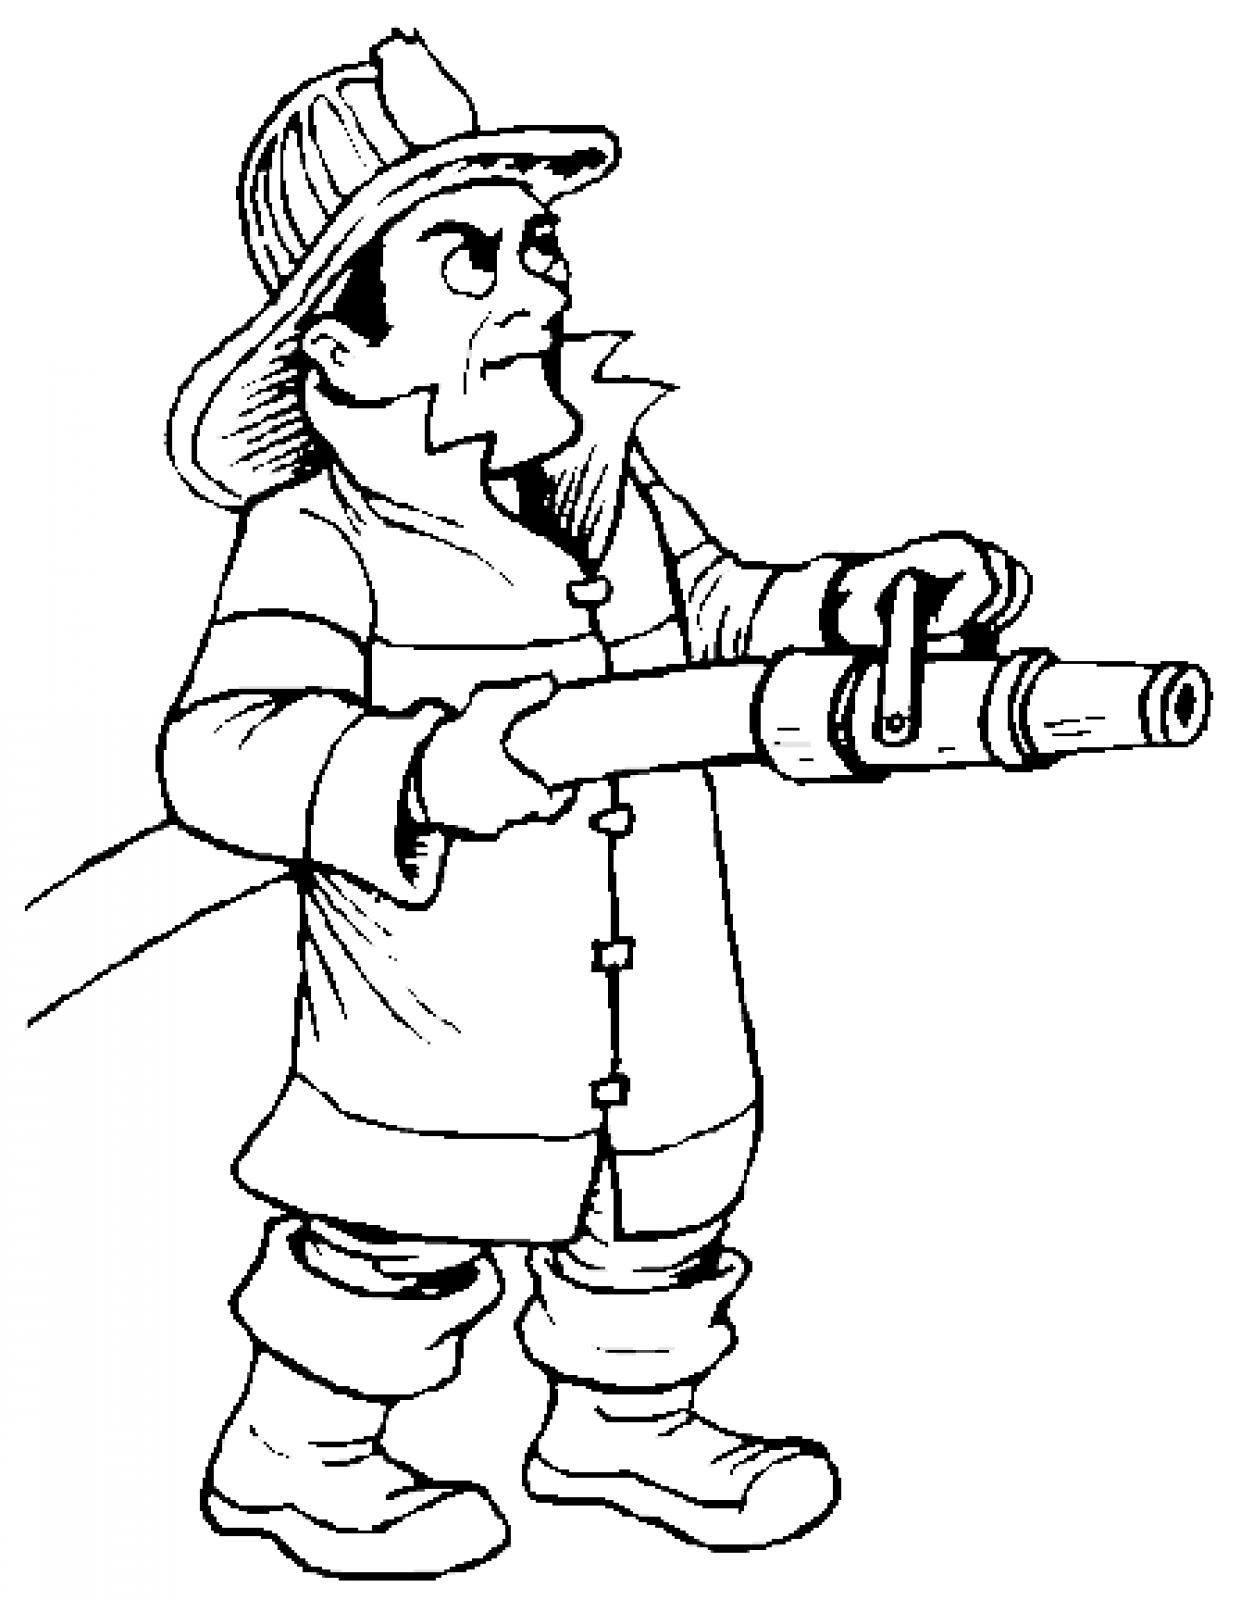 Firefighter Black And White Firefighter Cartoon Fire